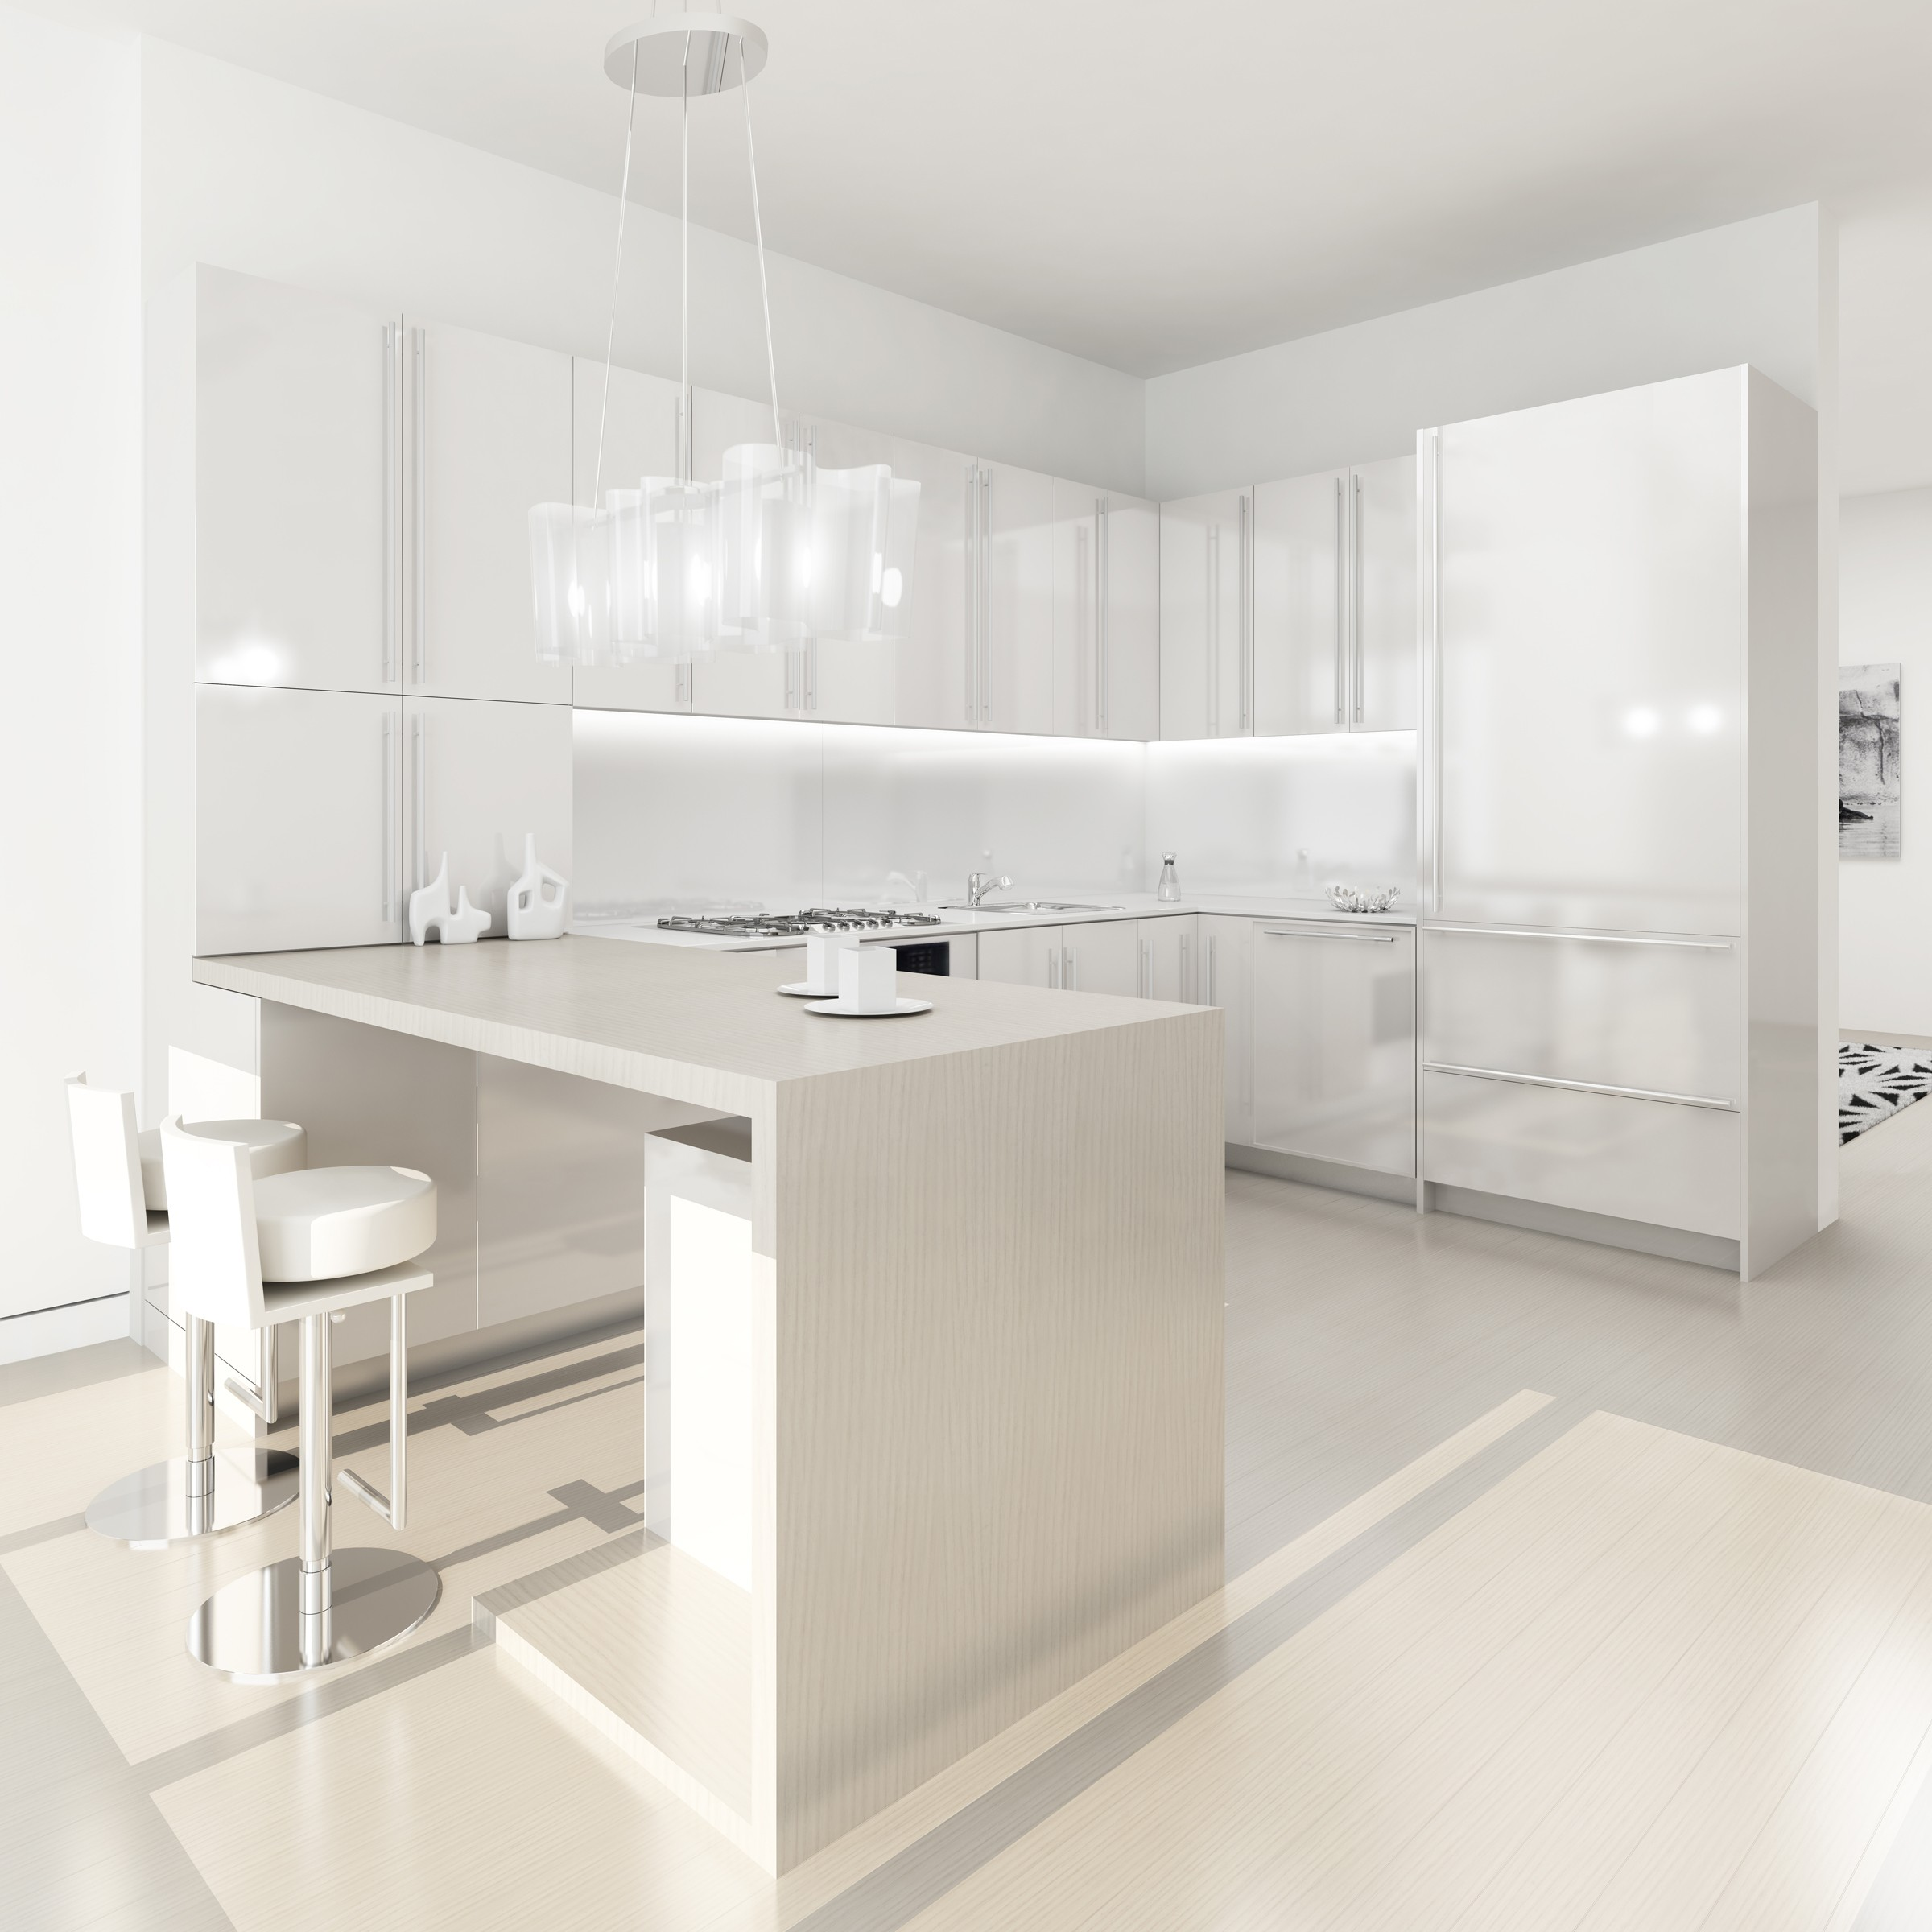 White kitchens White interior design